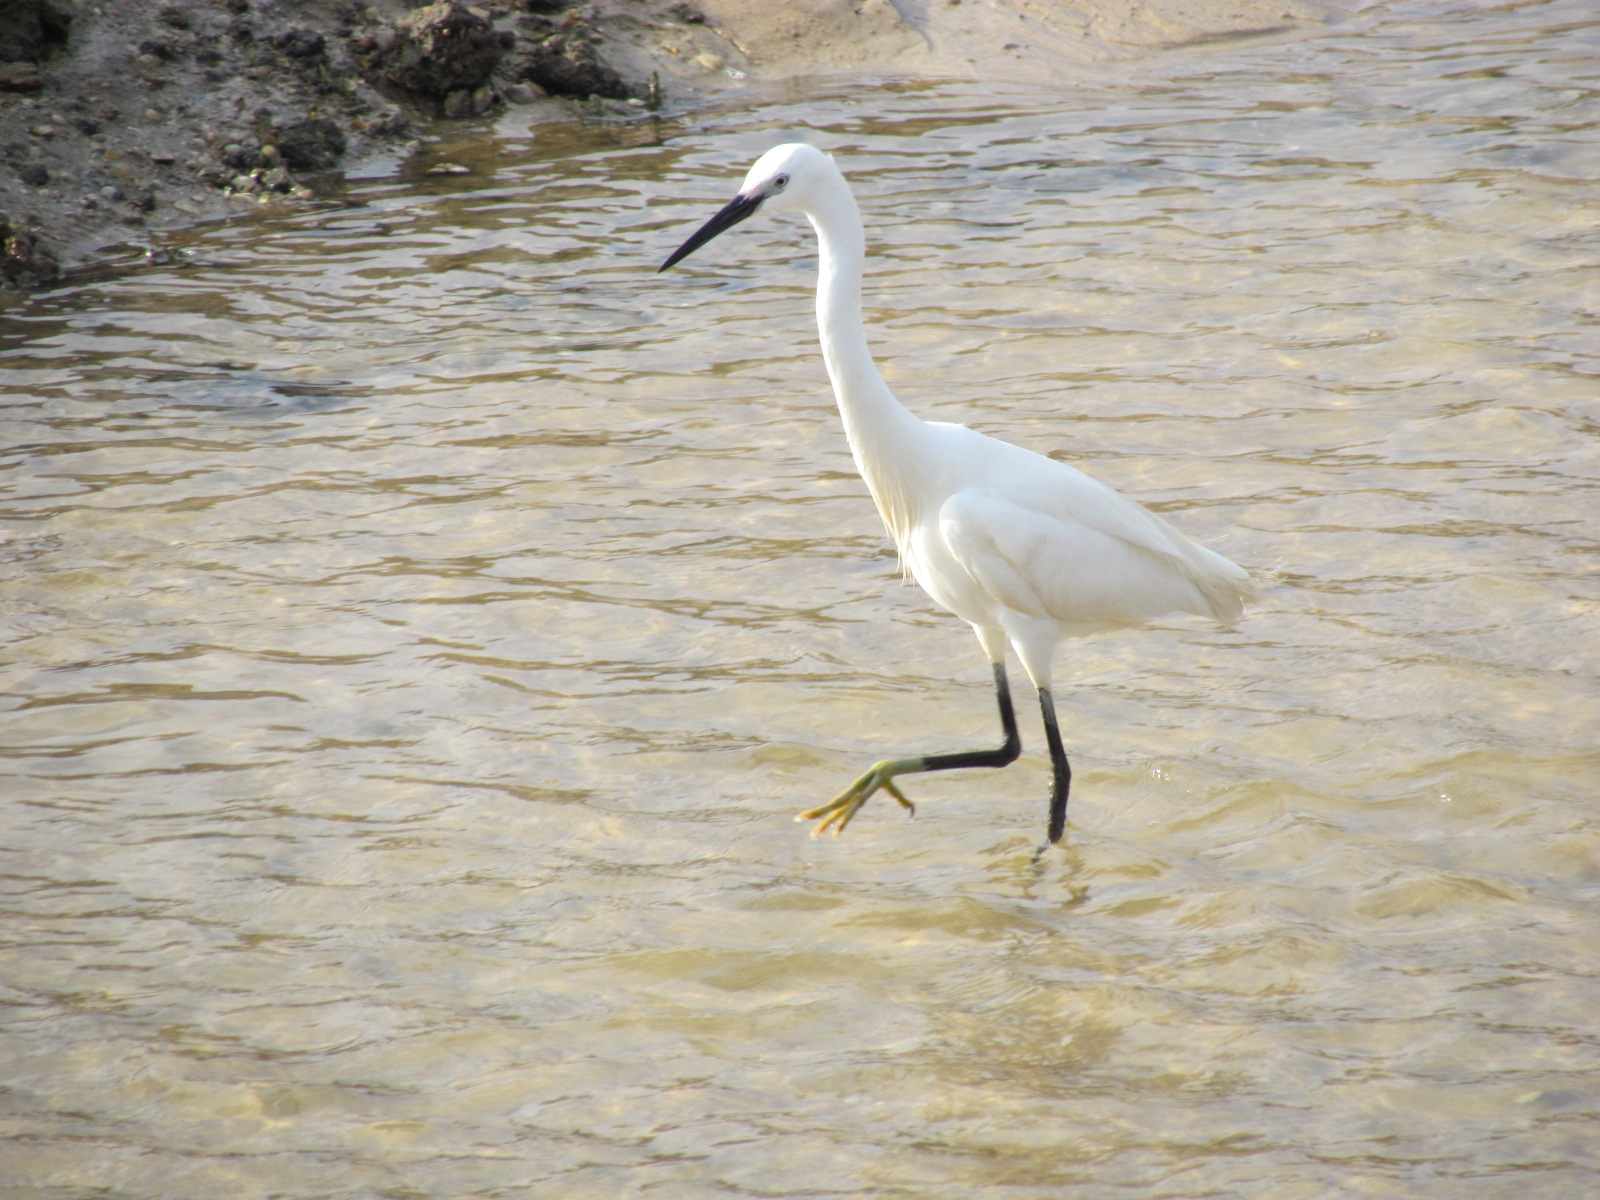 Little Egret walking in the water